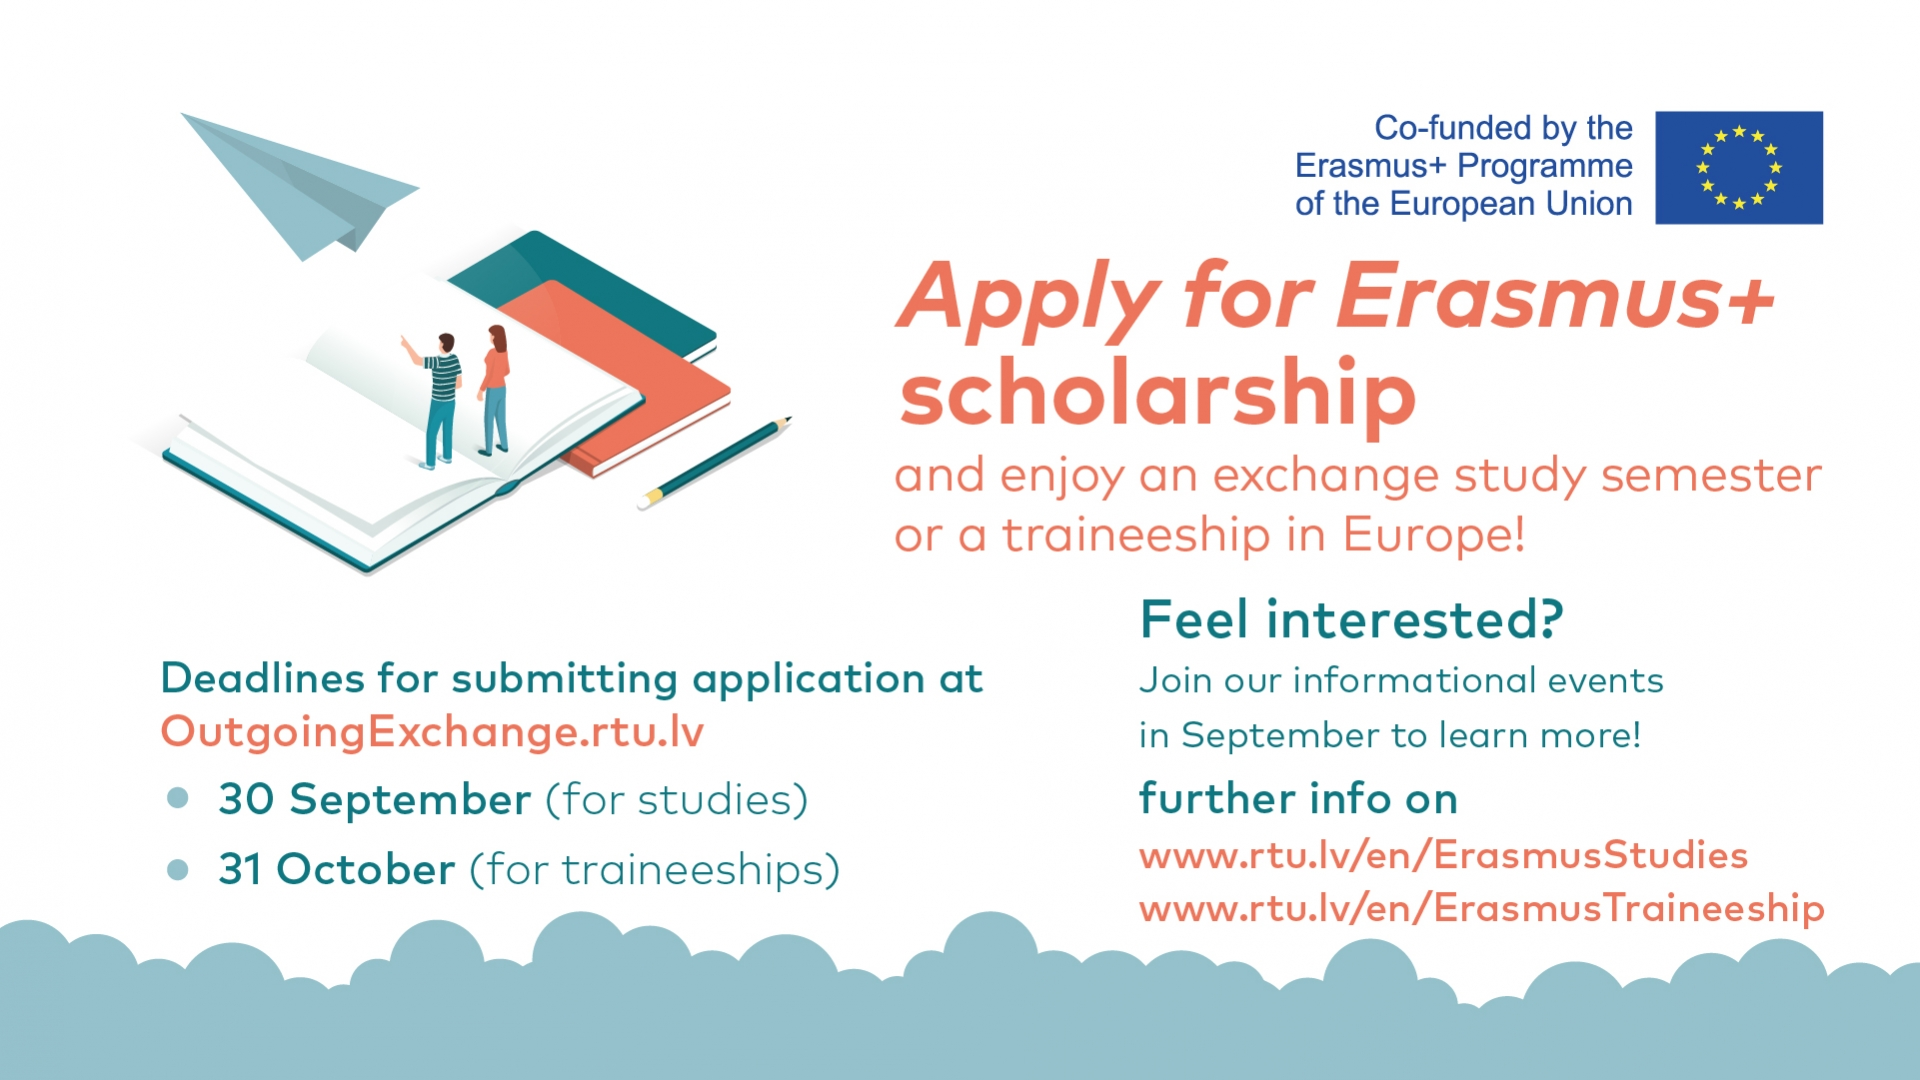 Last day to apply for the Erasmus+ traineeship